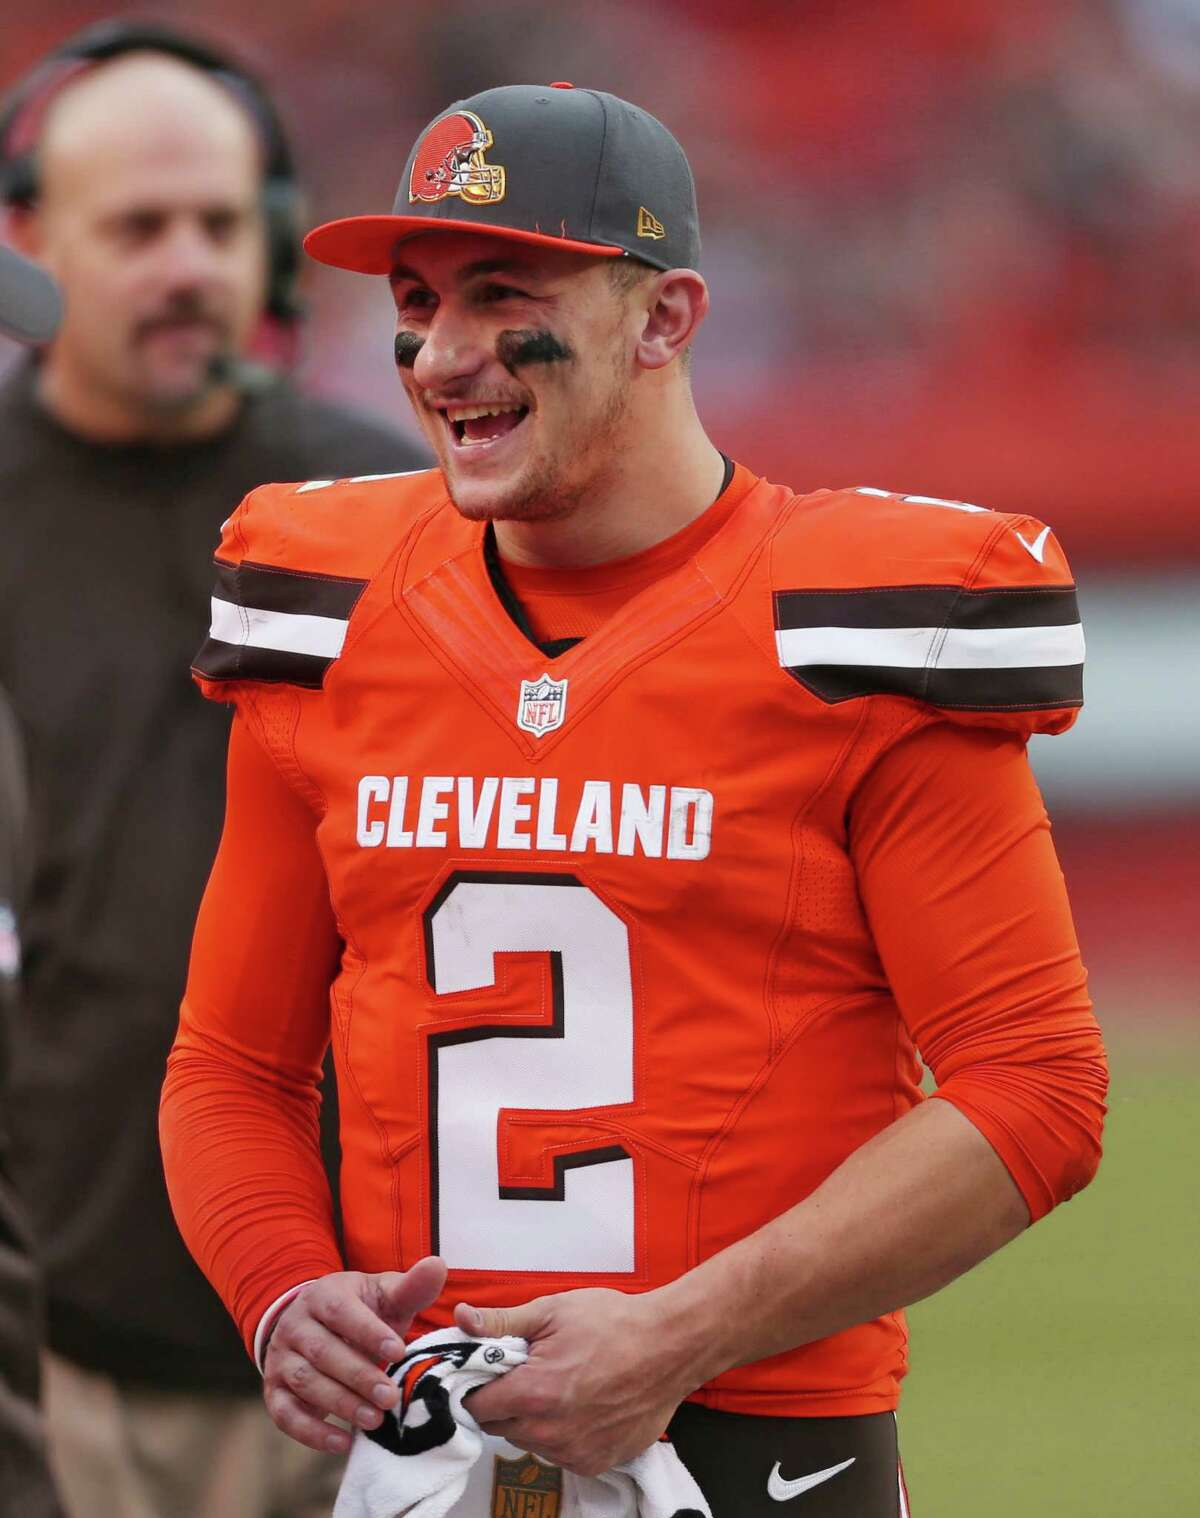 Browns quarterback Johnny Manziel smiles during the second half against the San Francisco 49ers on Dec. 13, 2015, in Cleveland.